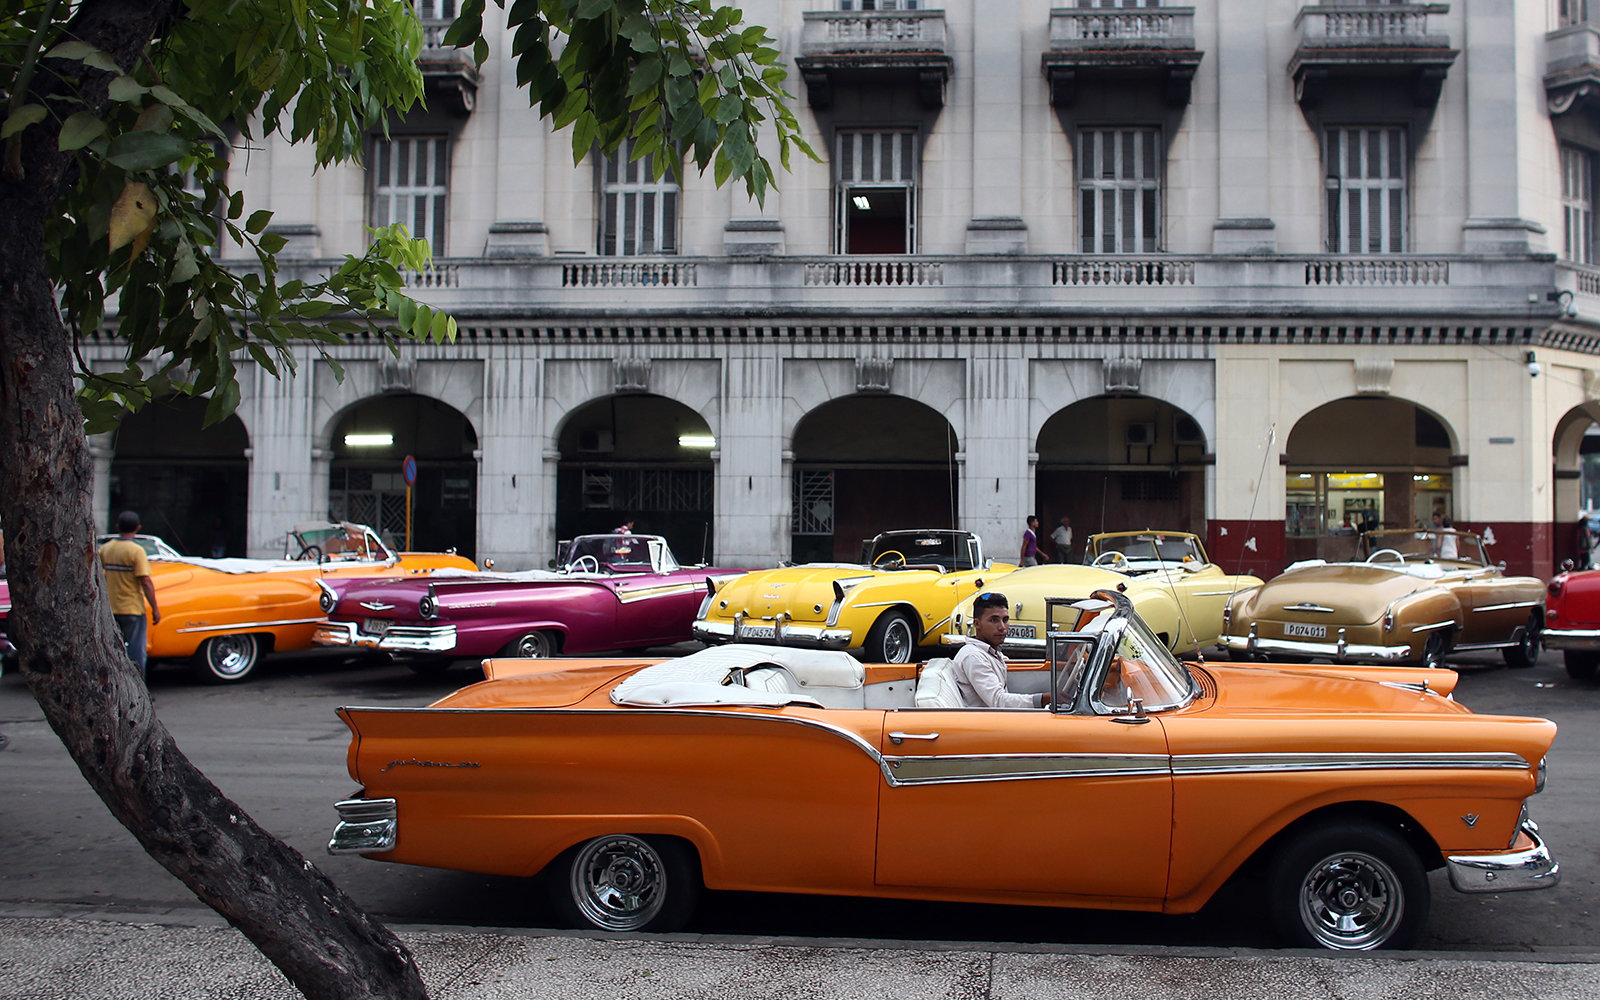 HAVANA, CUBA - SEPTEMBER 16: A taxi driver sits in a vintage American car on September 16, 2015 in Havana, Cuba.  Pope Francis is due to make a three day visit to Cuba from September 19 where he will meet President Raul Castro and hold Mass in Revolution